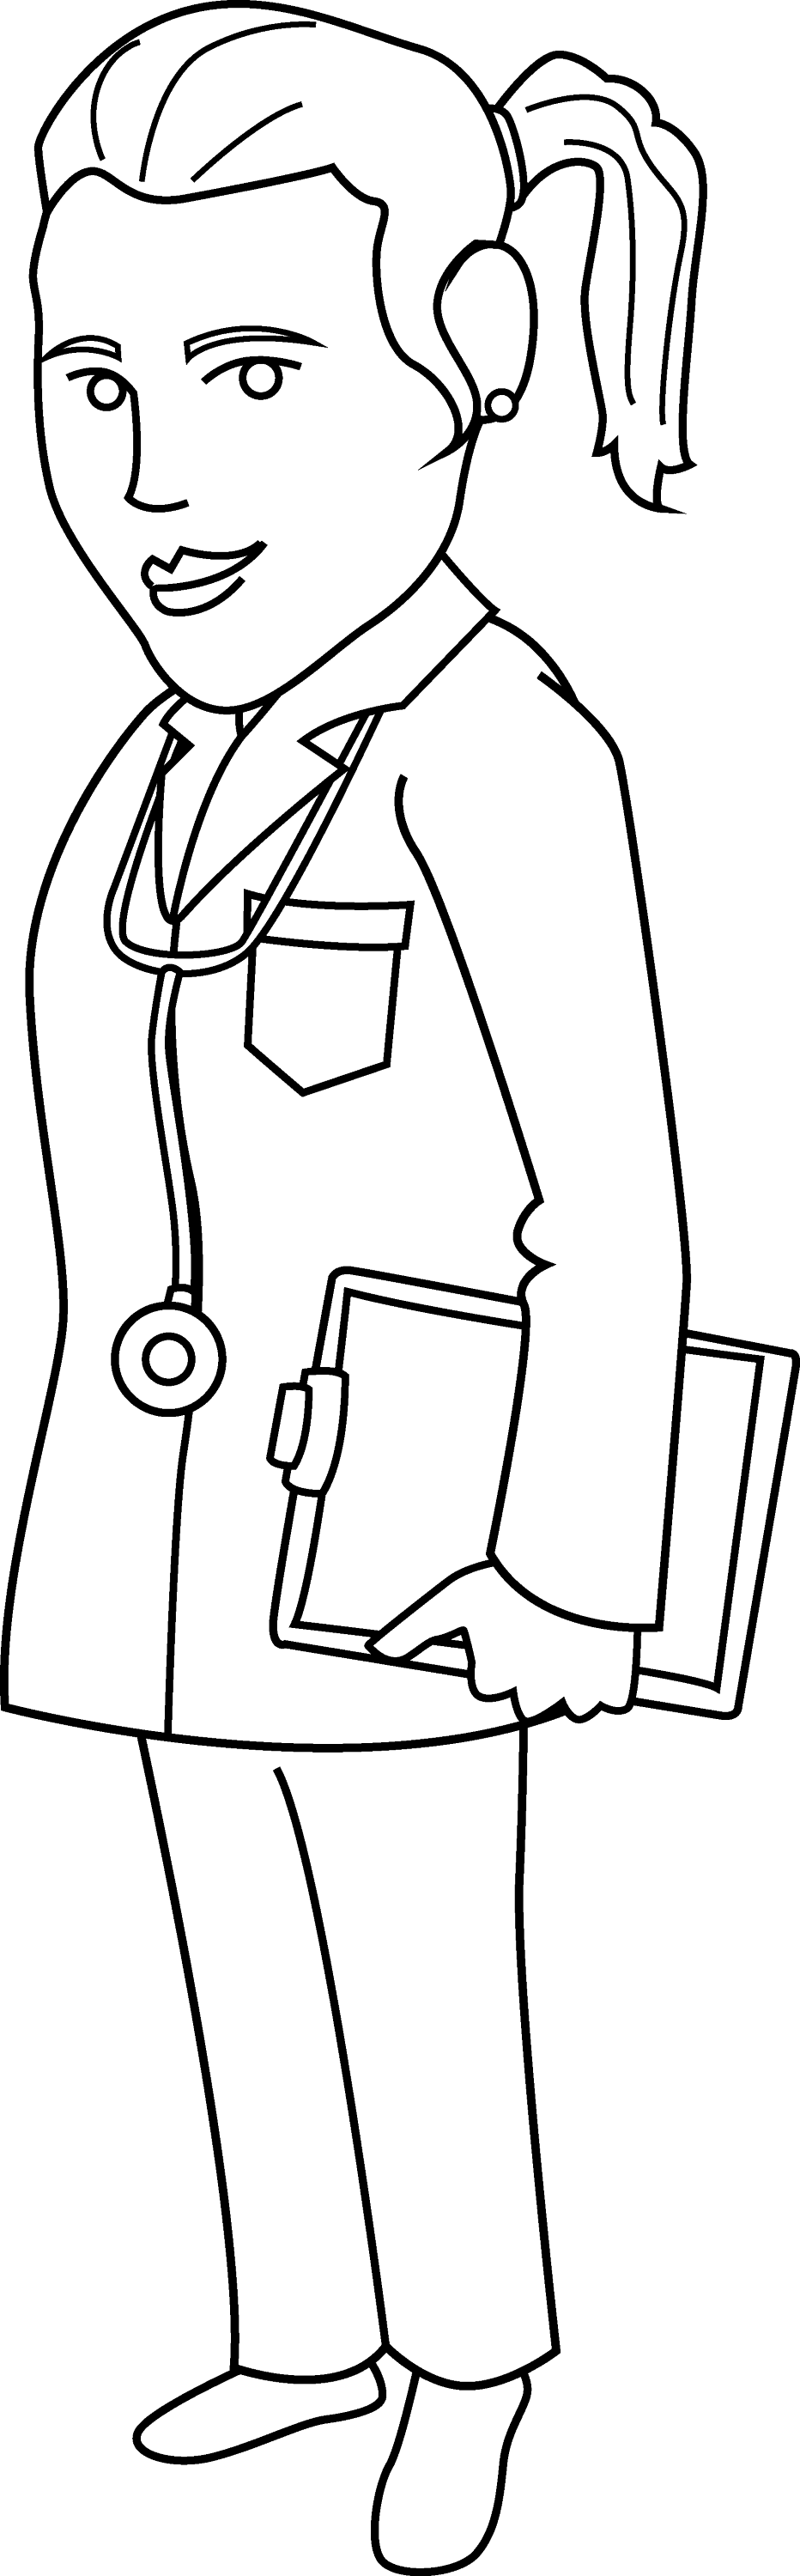 doctor for coloring doctor coloring pages for understanding kids why do they for coloring doctor